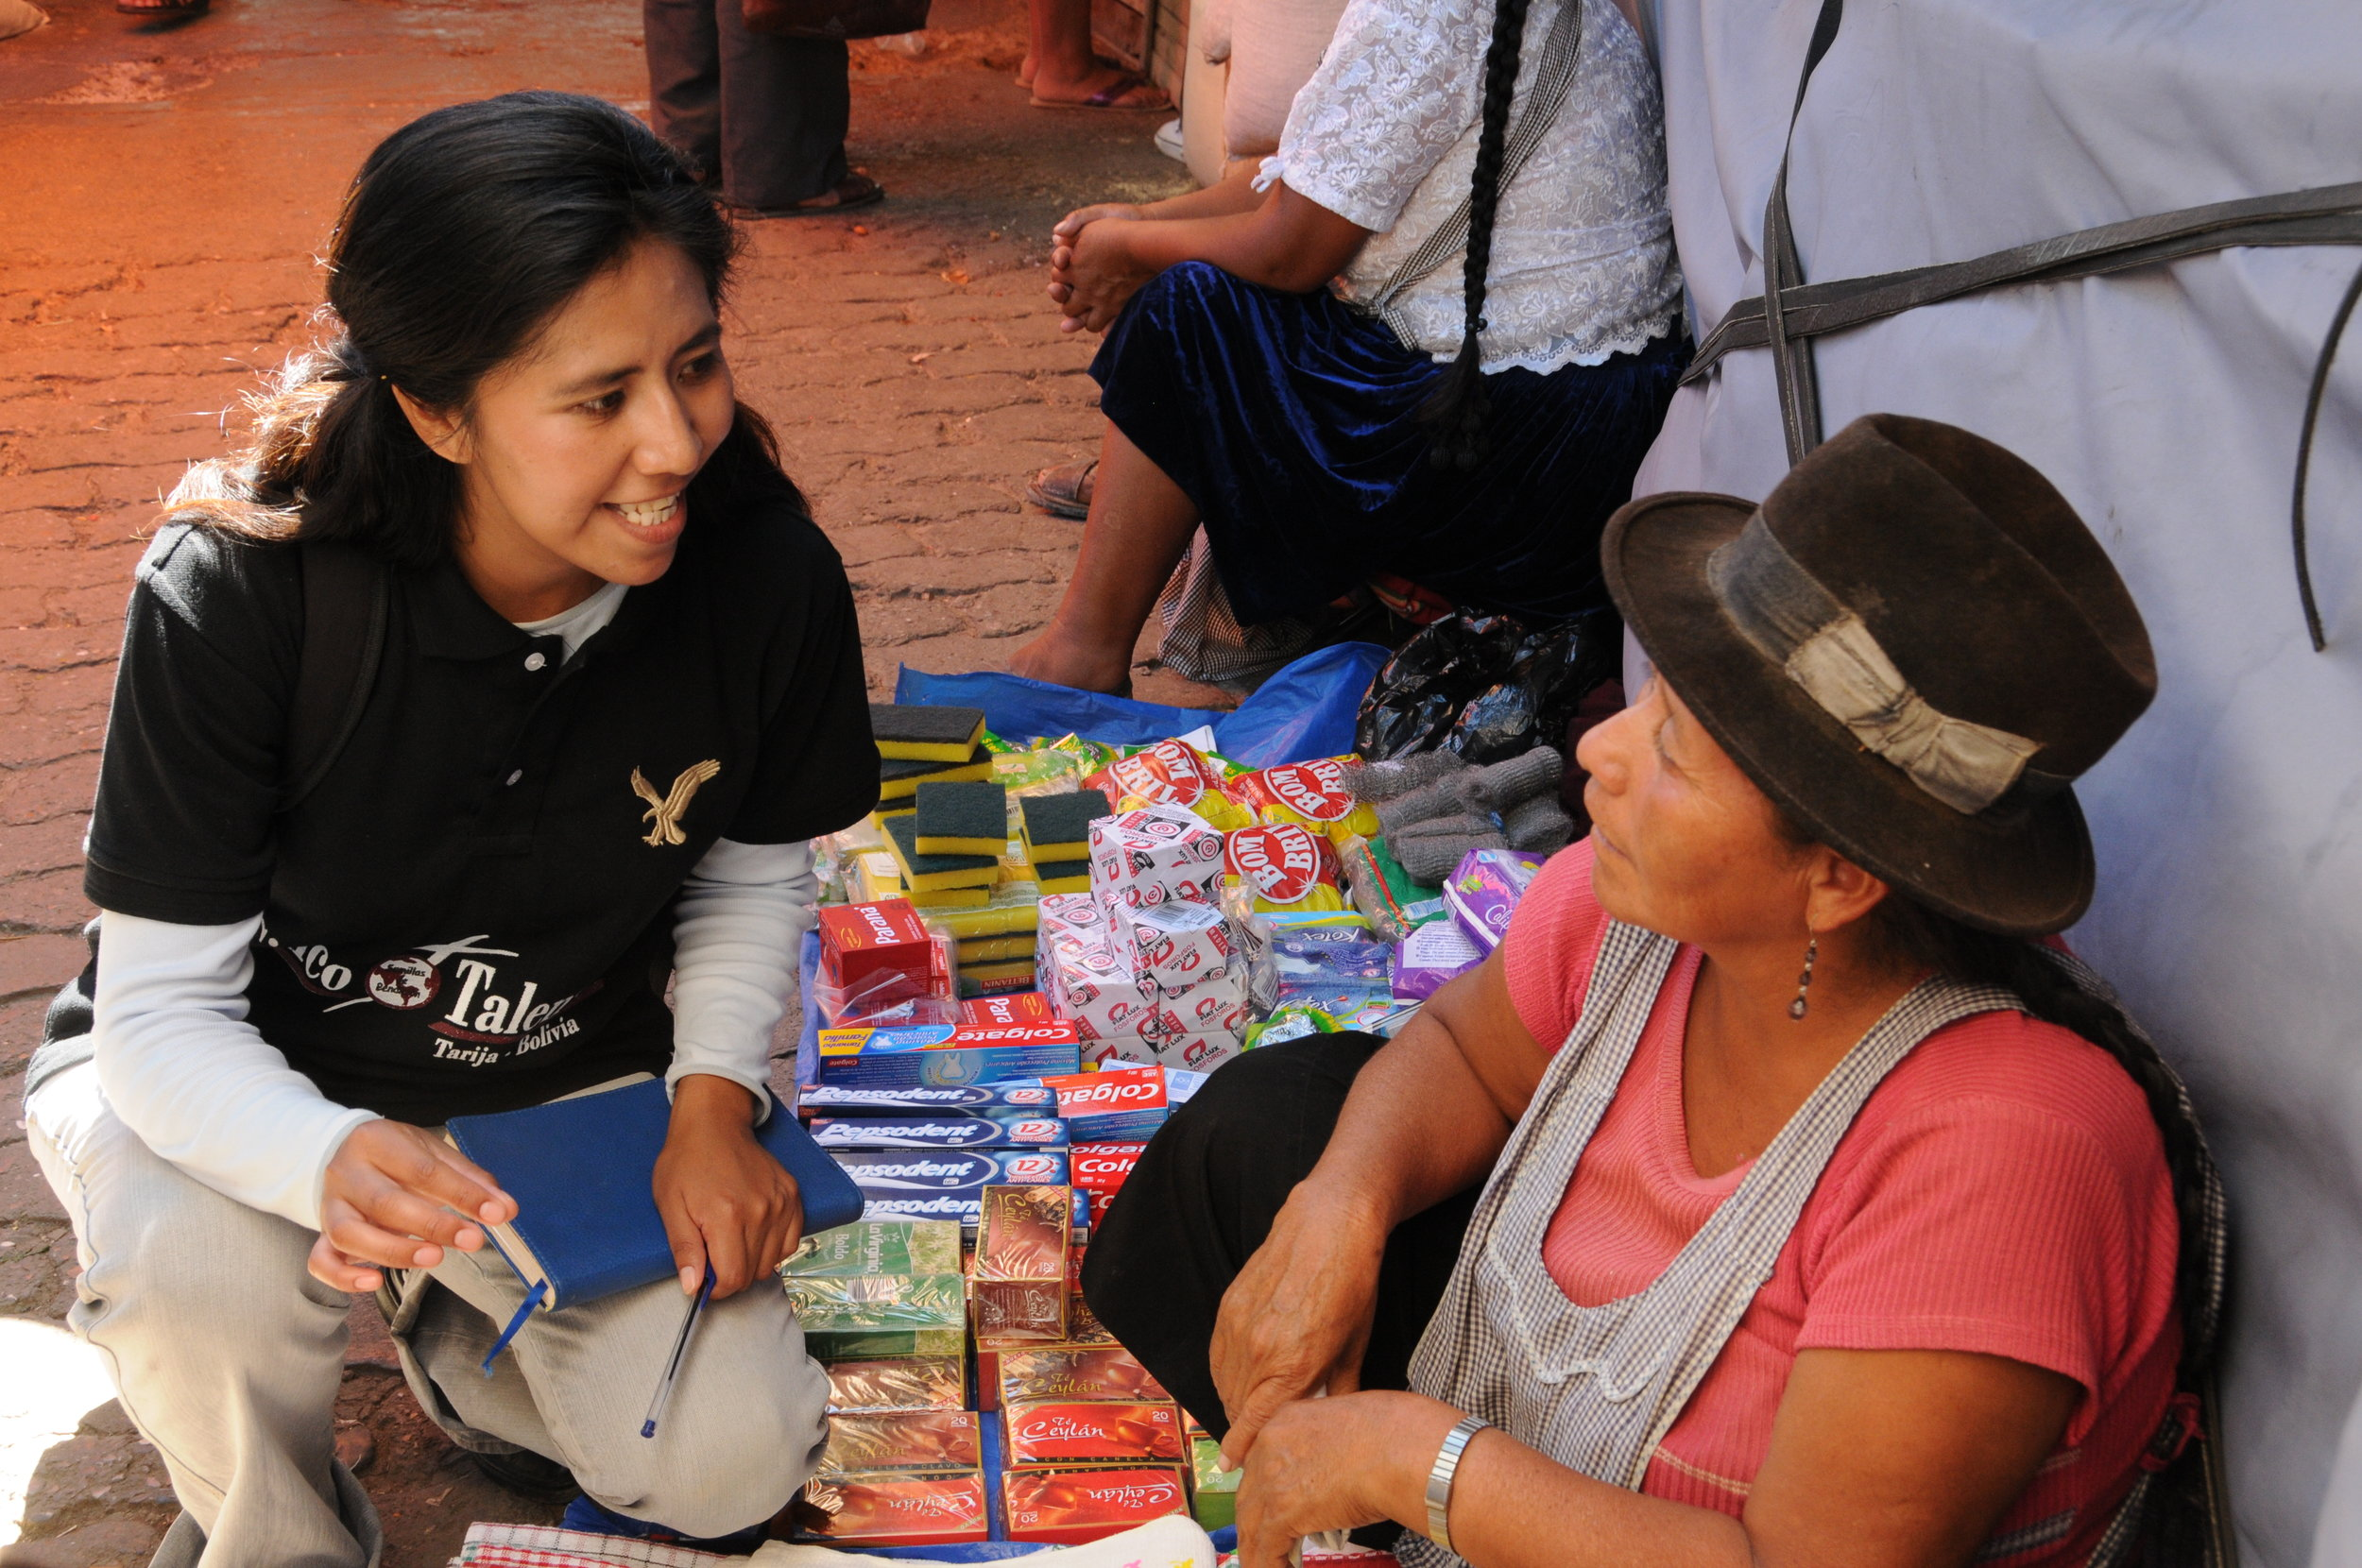 Bolivia's Training Coordinator, Eva (left), speaks to a member about her business.